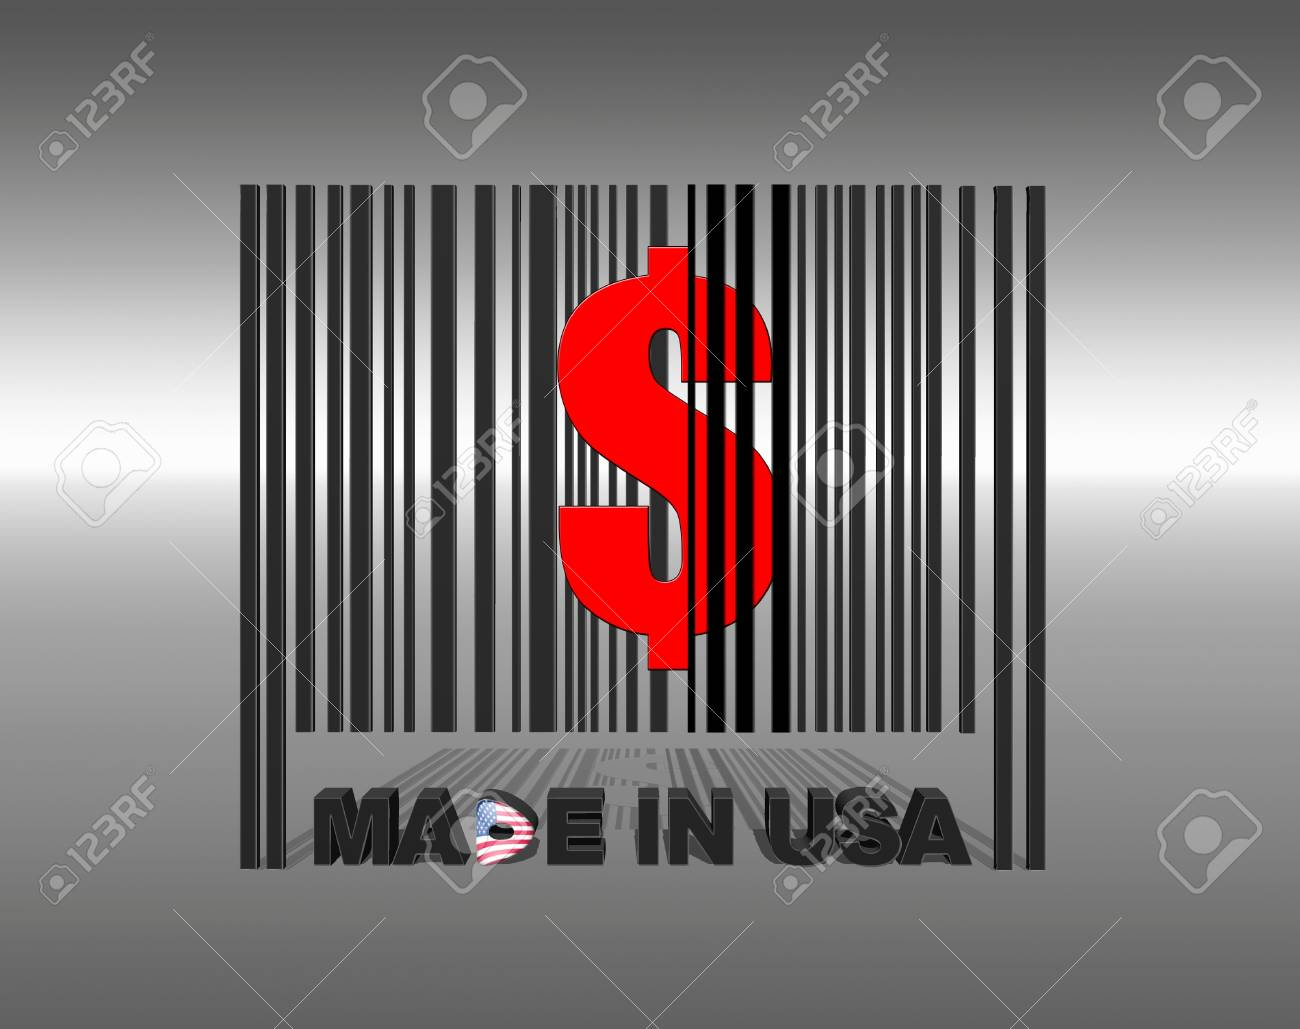 Illustration with a barcode made in usa Stock Illustration - 17325638